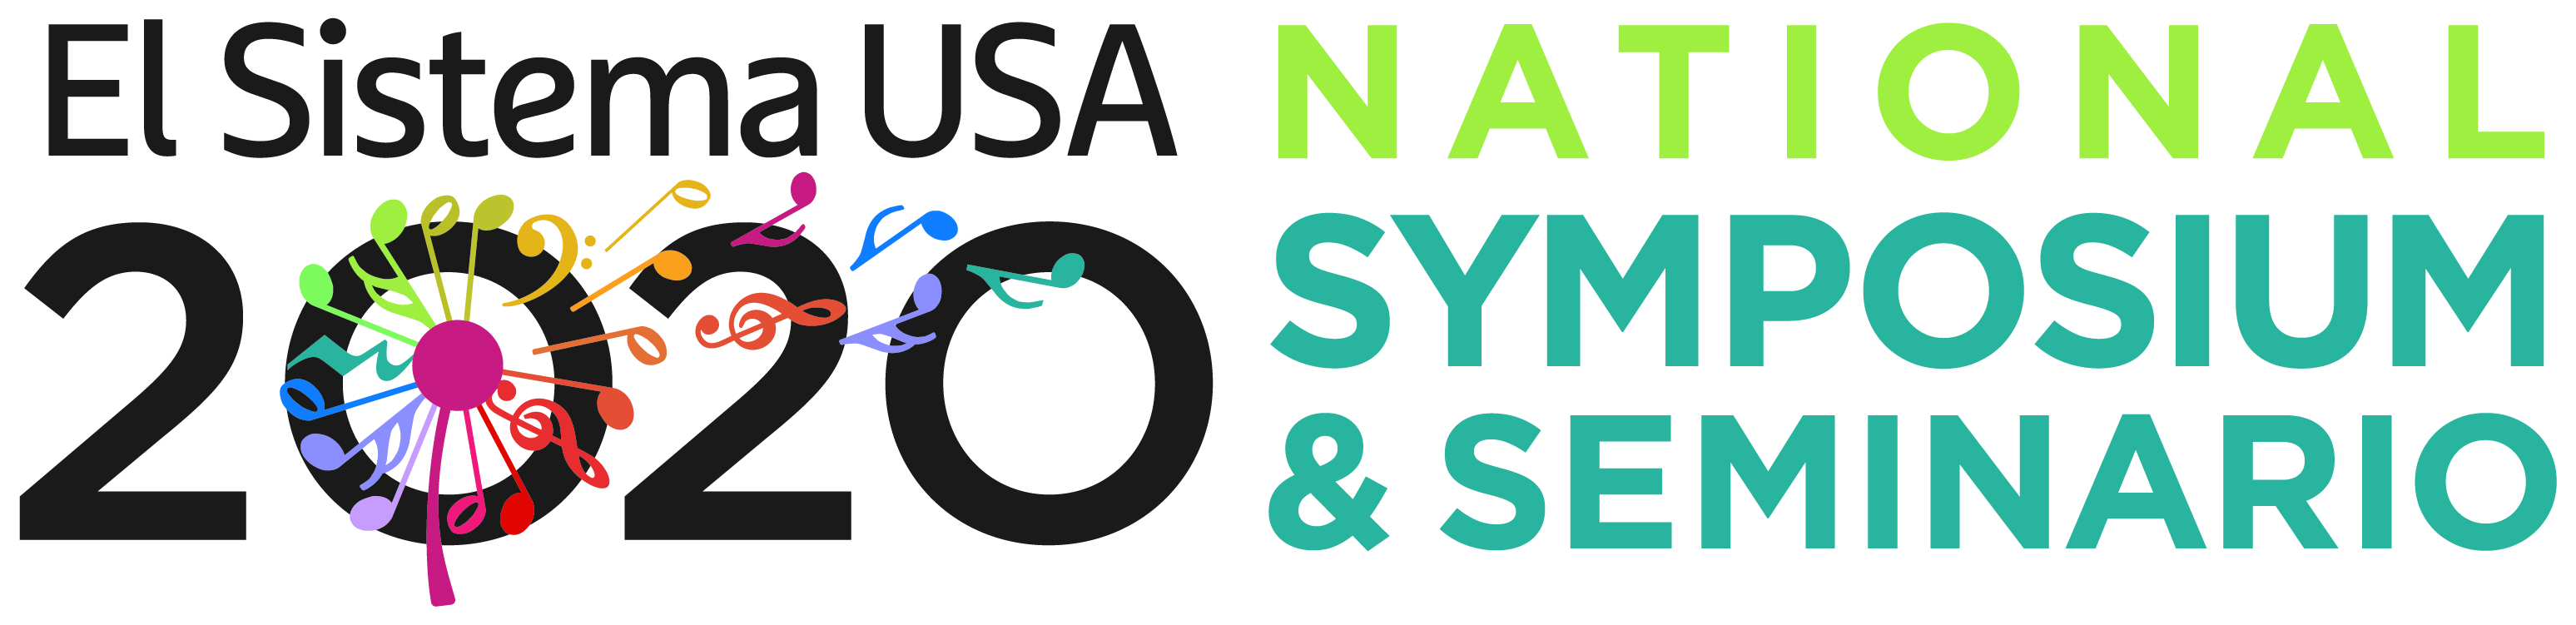 2020 El Sistema USA Symposium & Seminario Registration